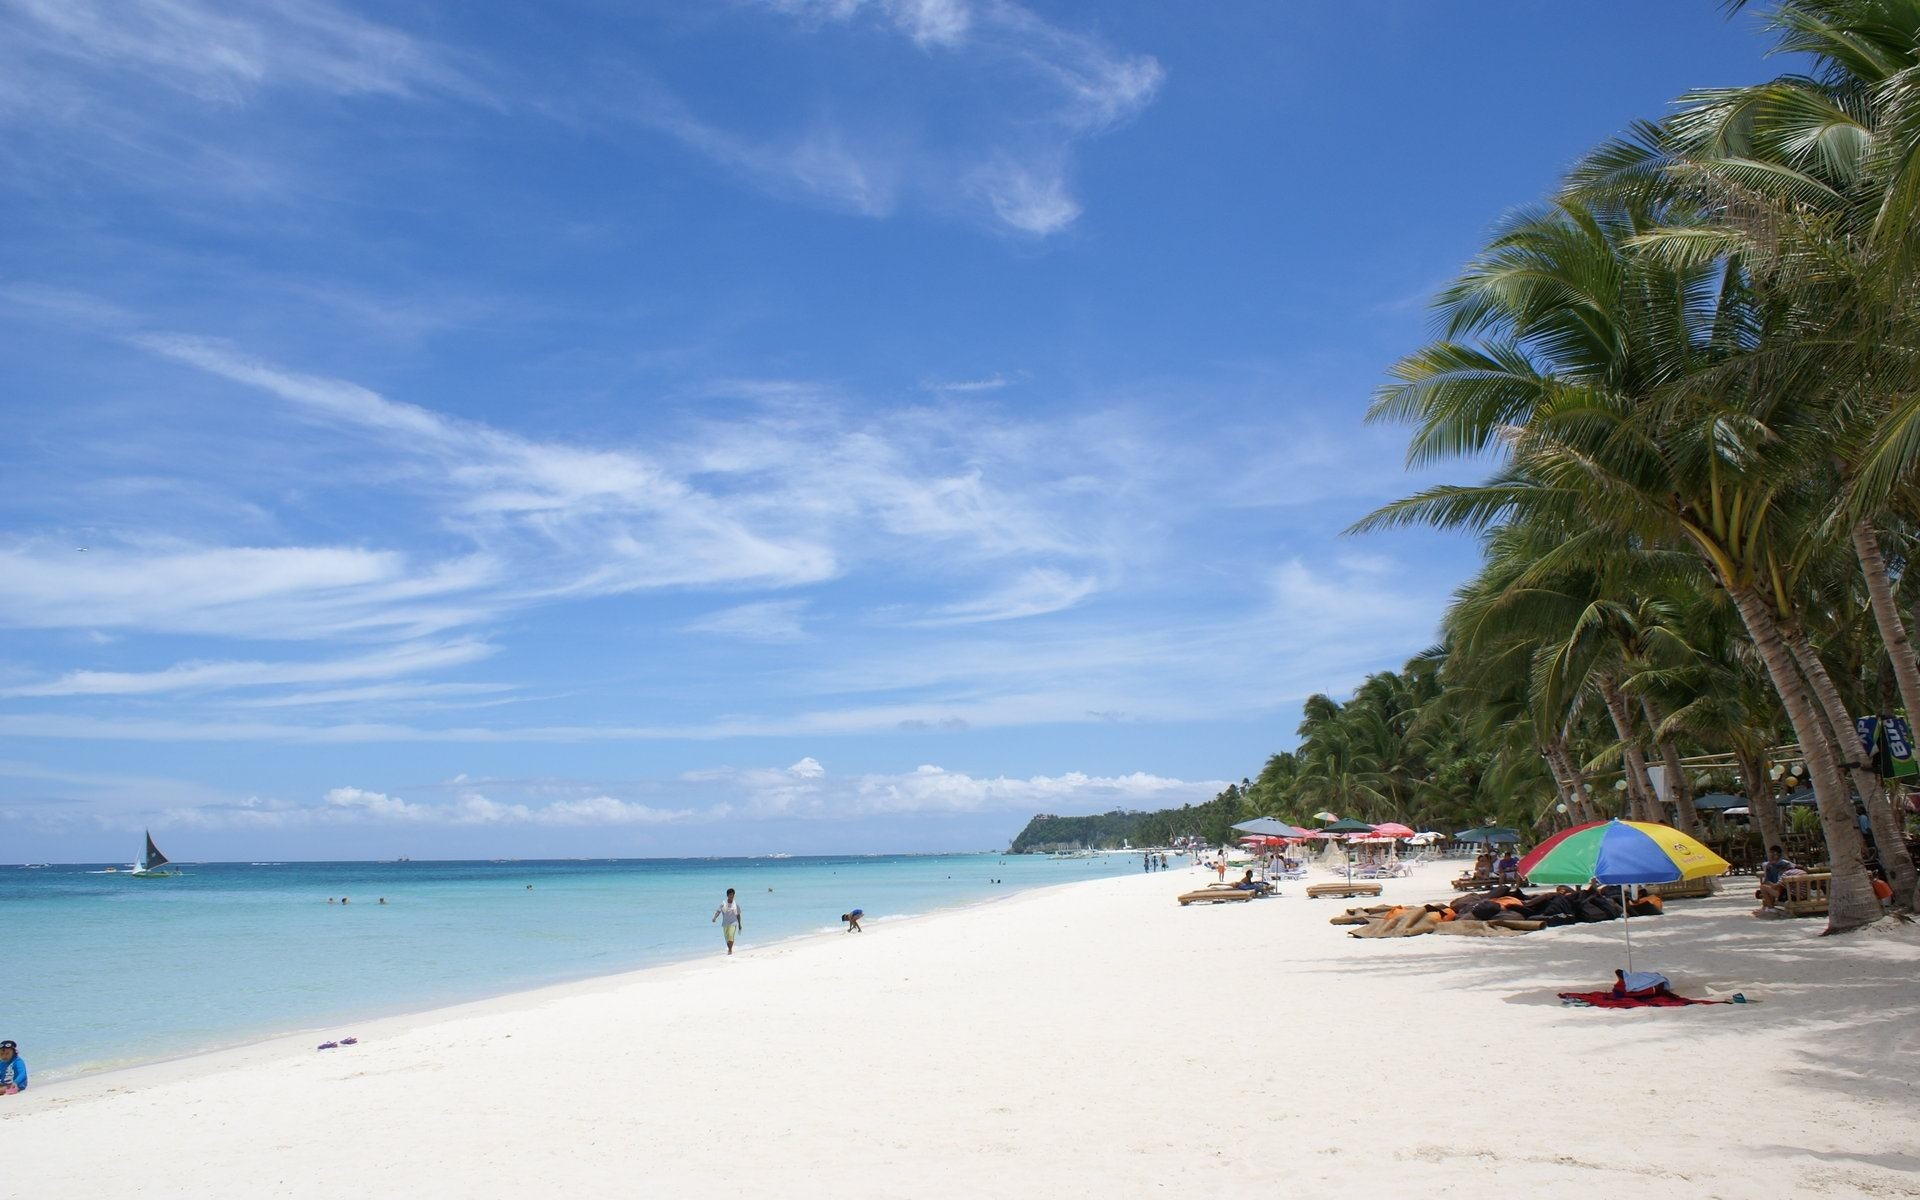 Wallpapers Backgrounds – Beautiful beach wallpapers Boracay island  Philippines